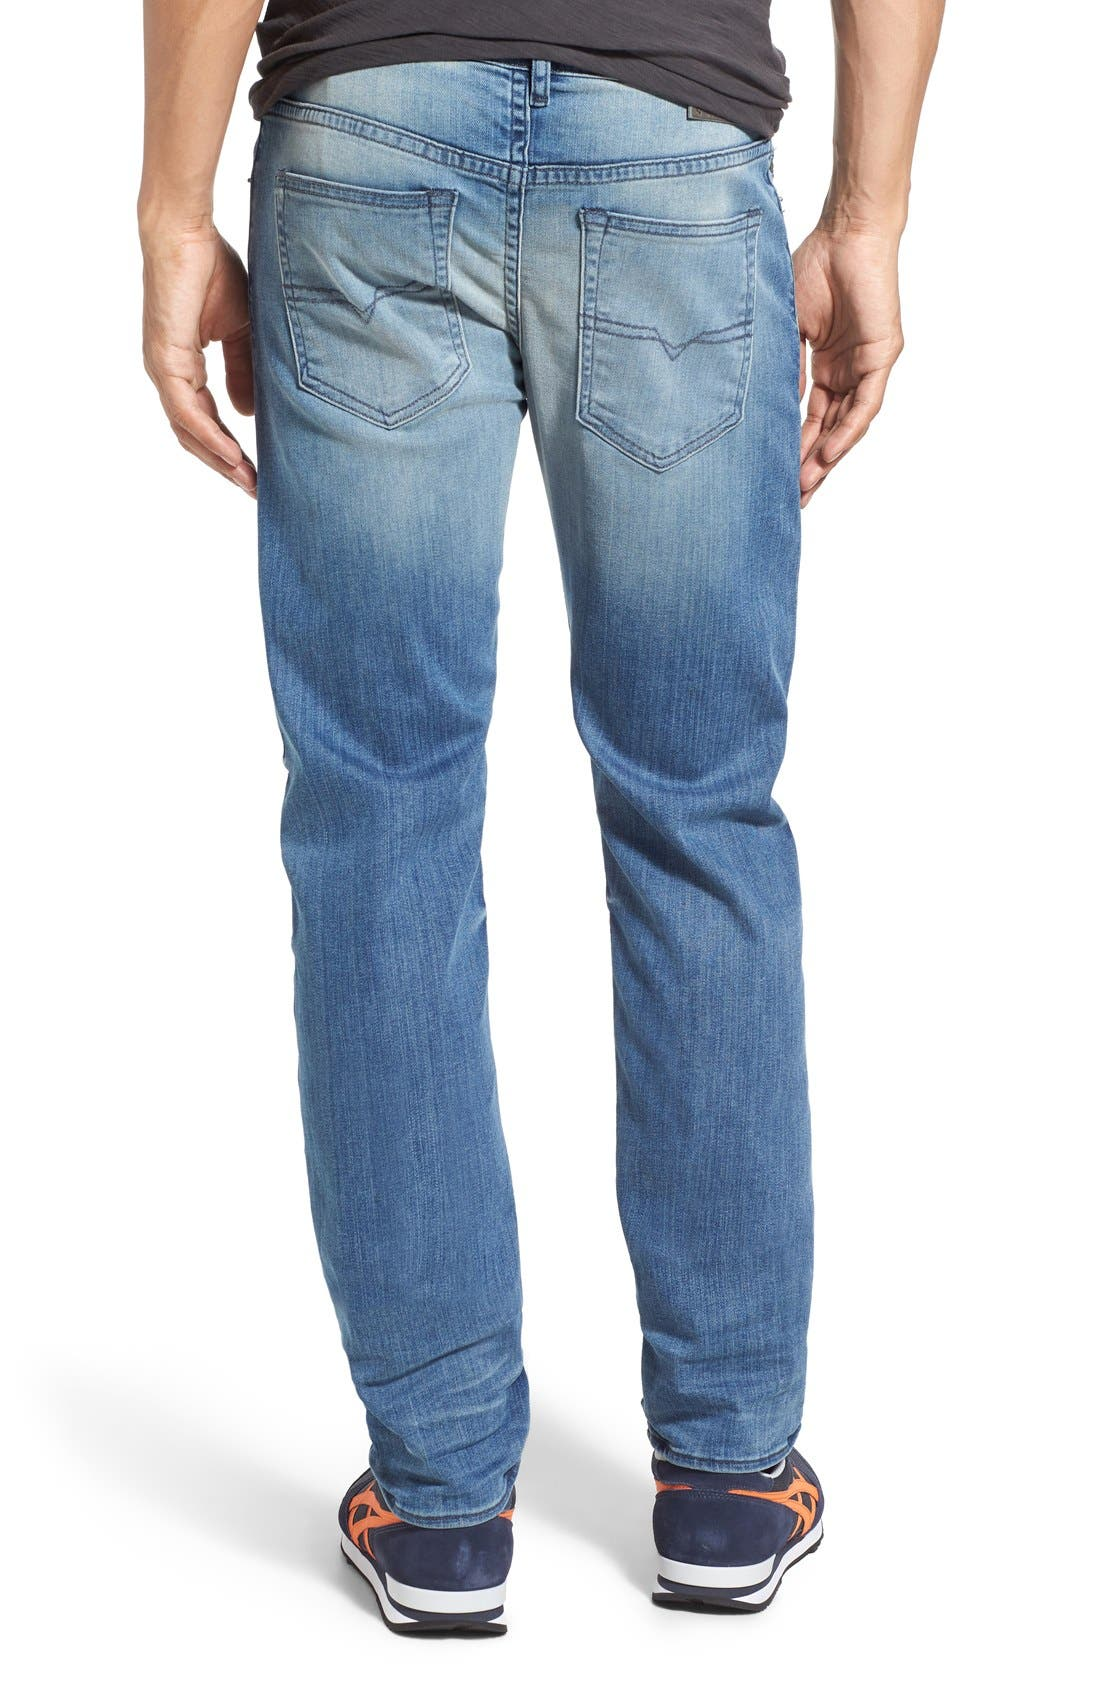 'Buster' Slim Straight Fit Jeans,                             Alternate thumbnail 10, color,                             400